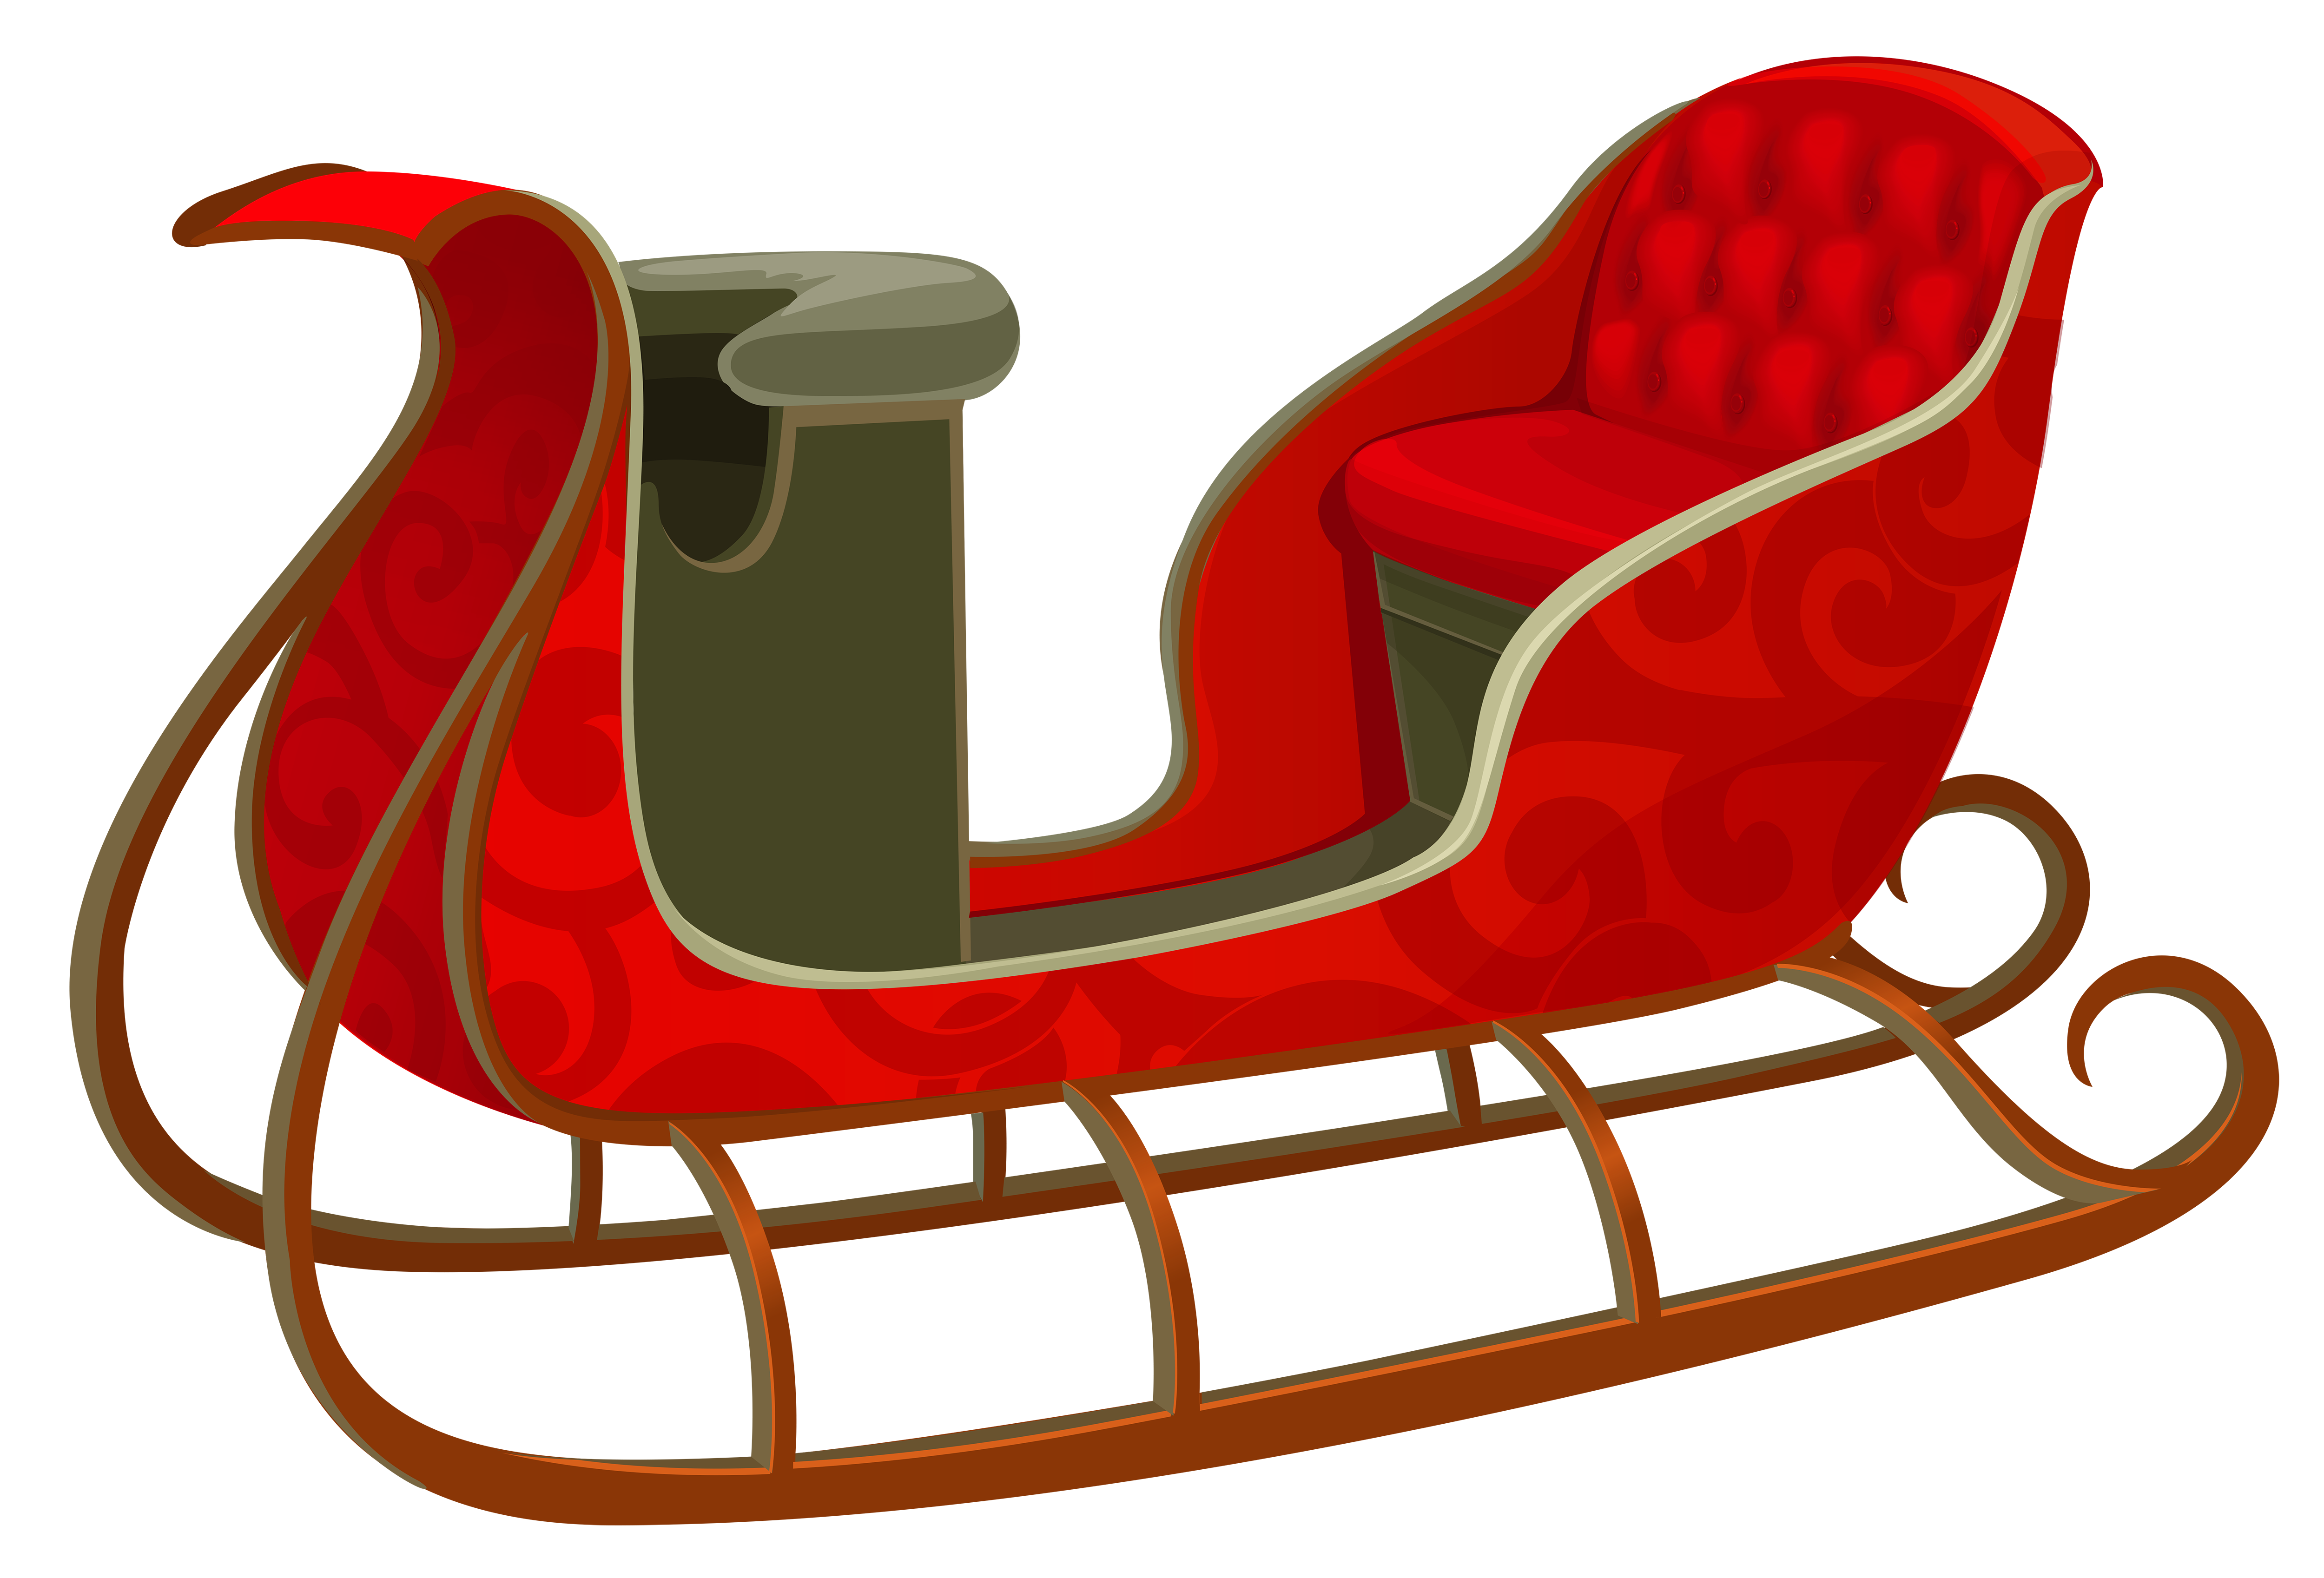 Christmas sleighs clipart free library 28+ Collection of Christmas Sleigh Clipart | High quality, free ... free library